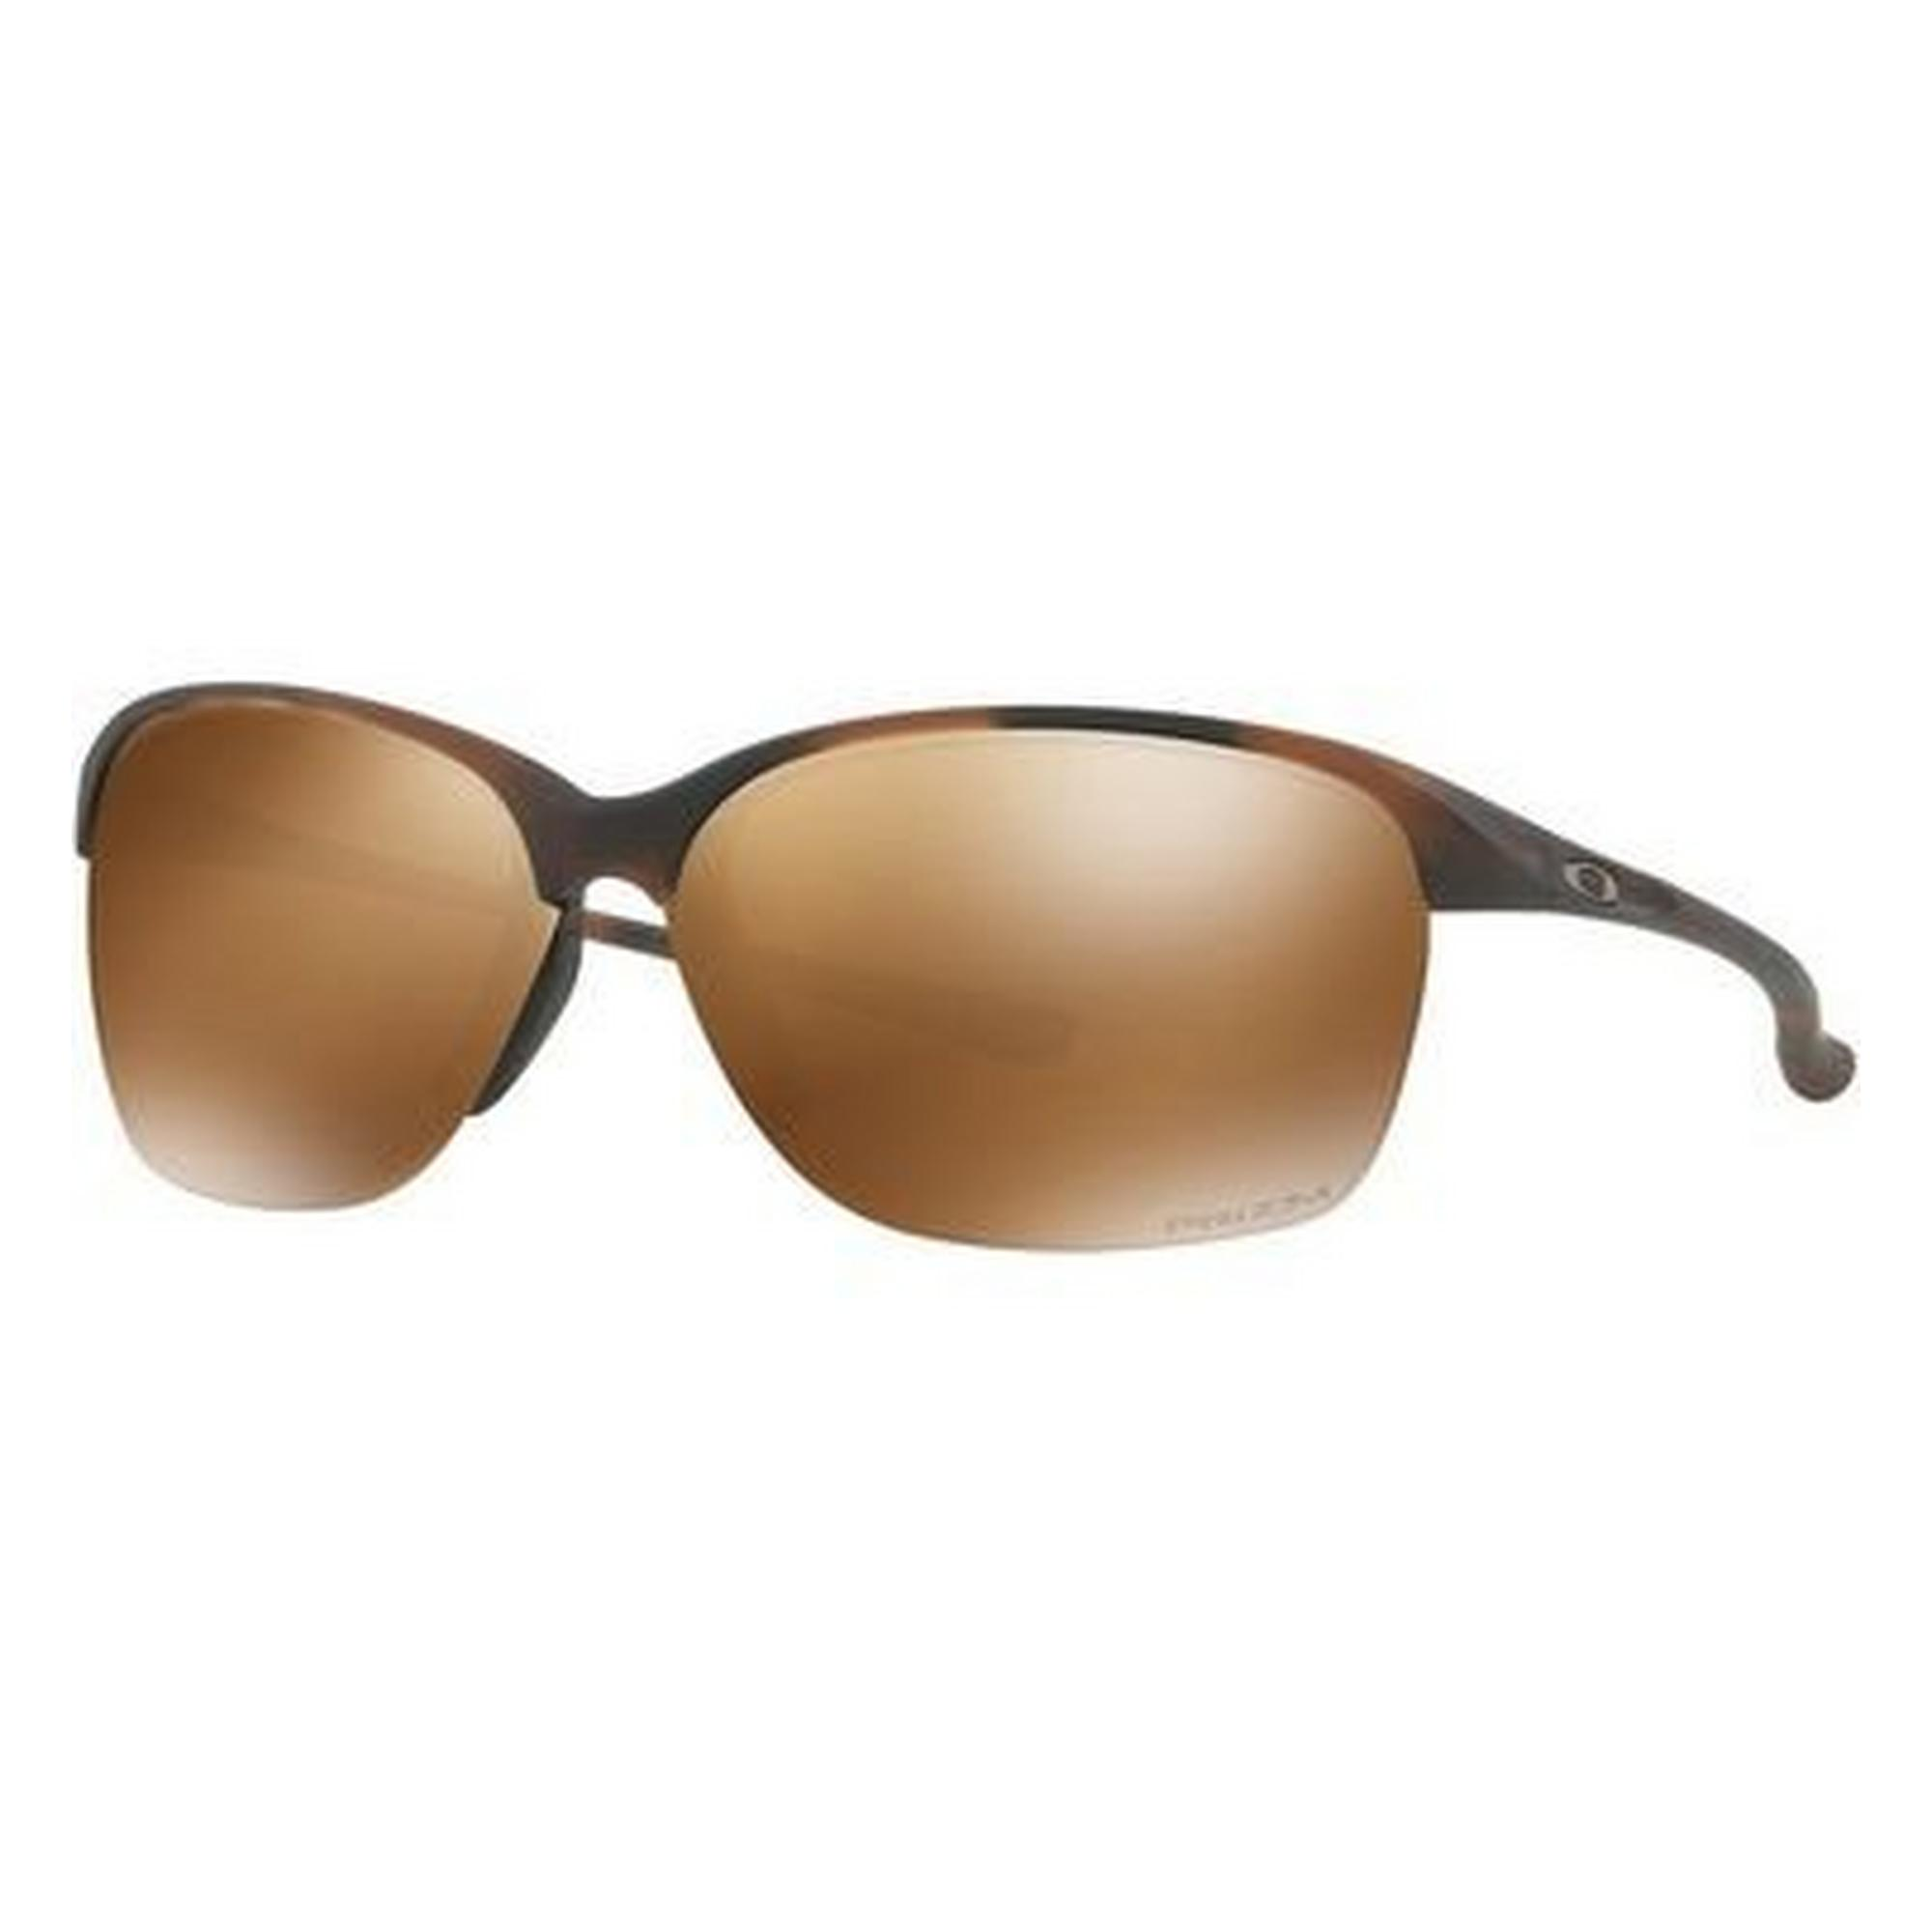 Women's Unstoppable Polarized Sunglasses